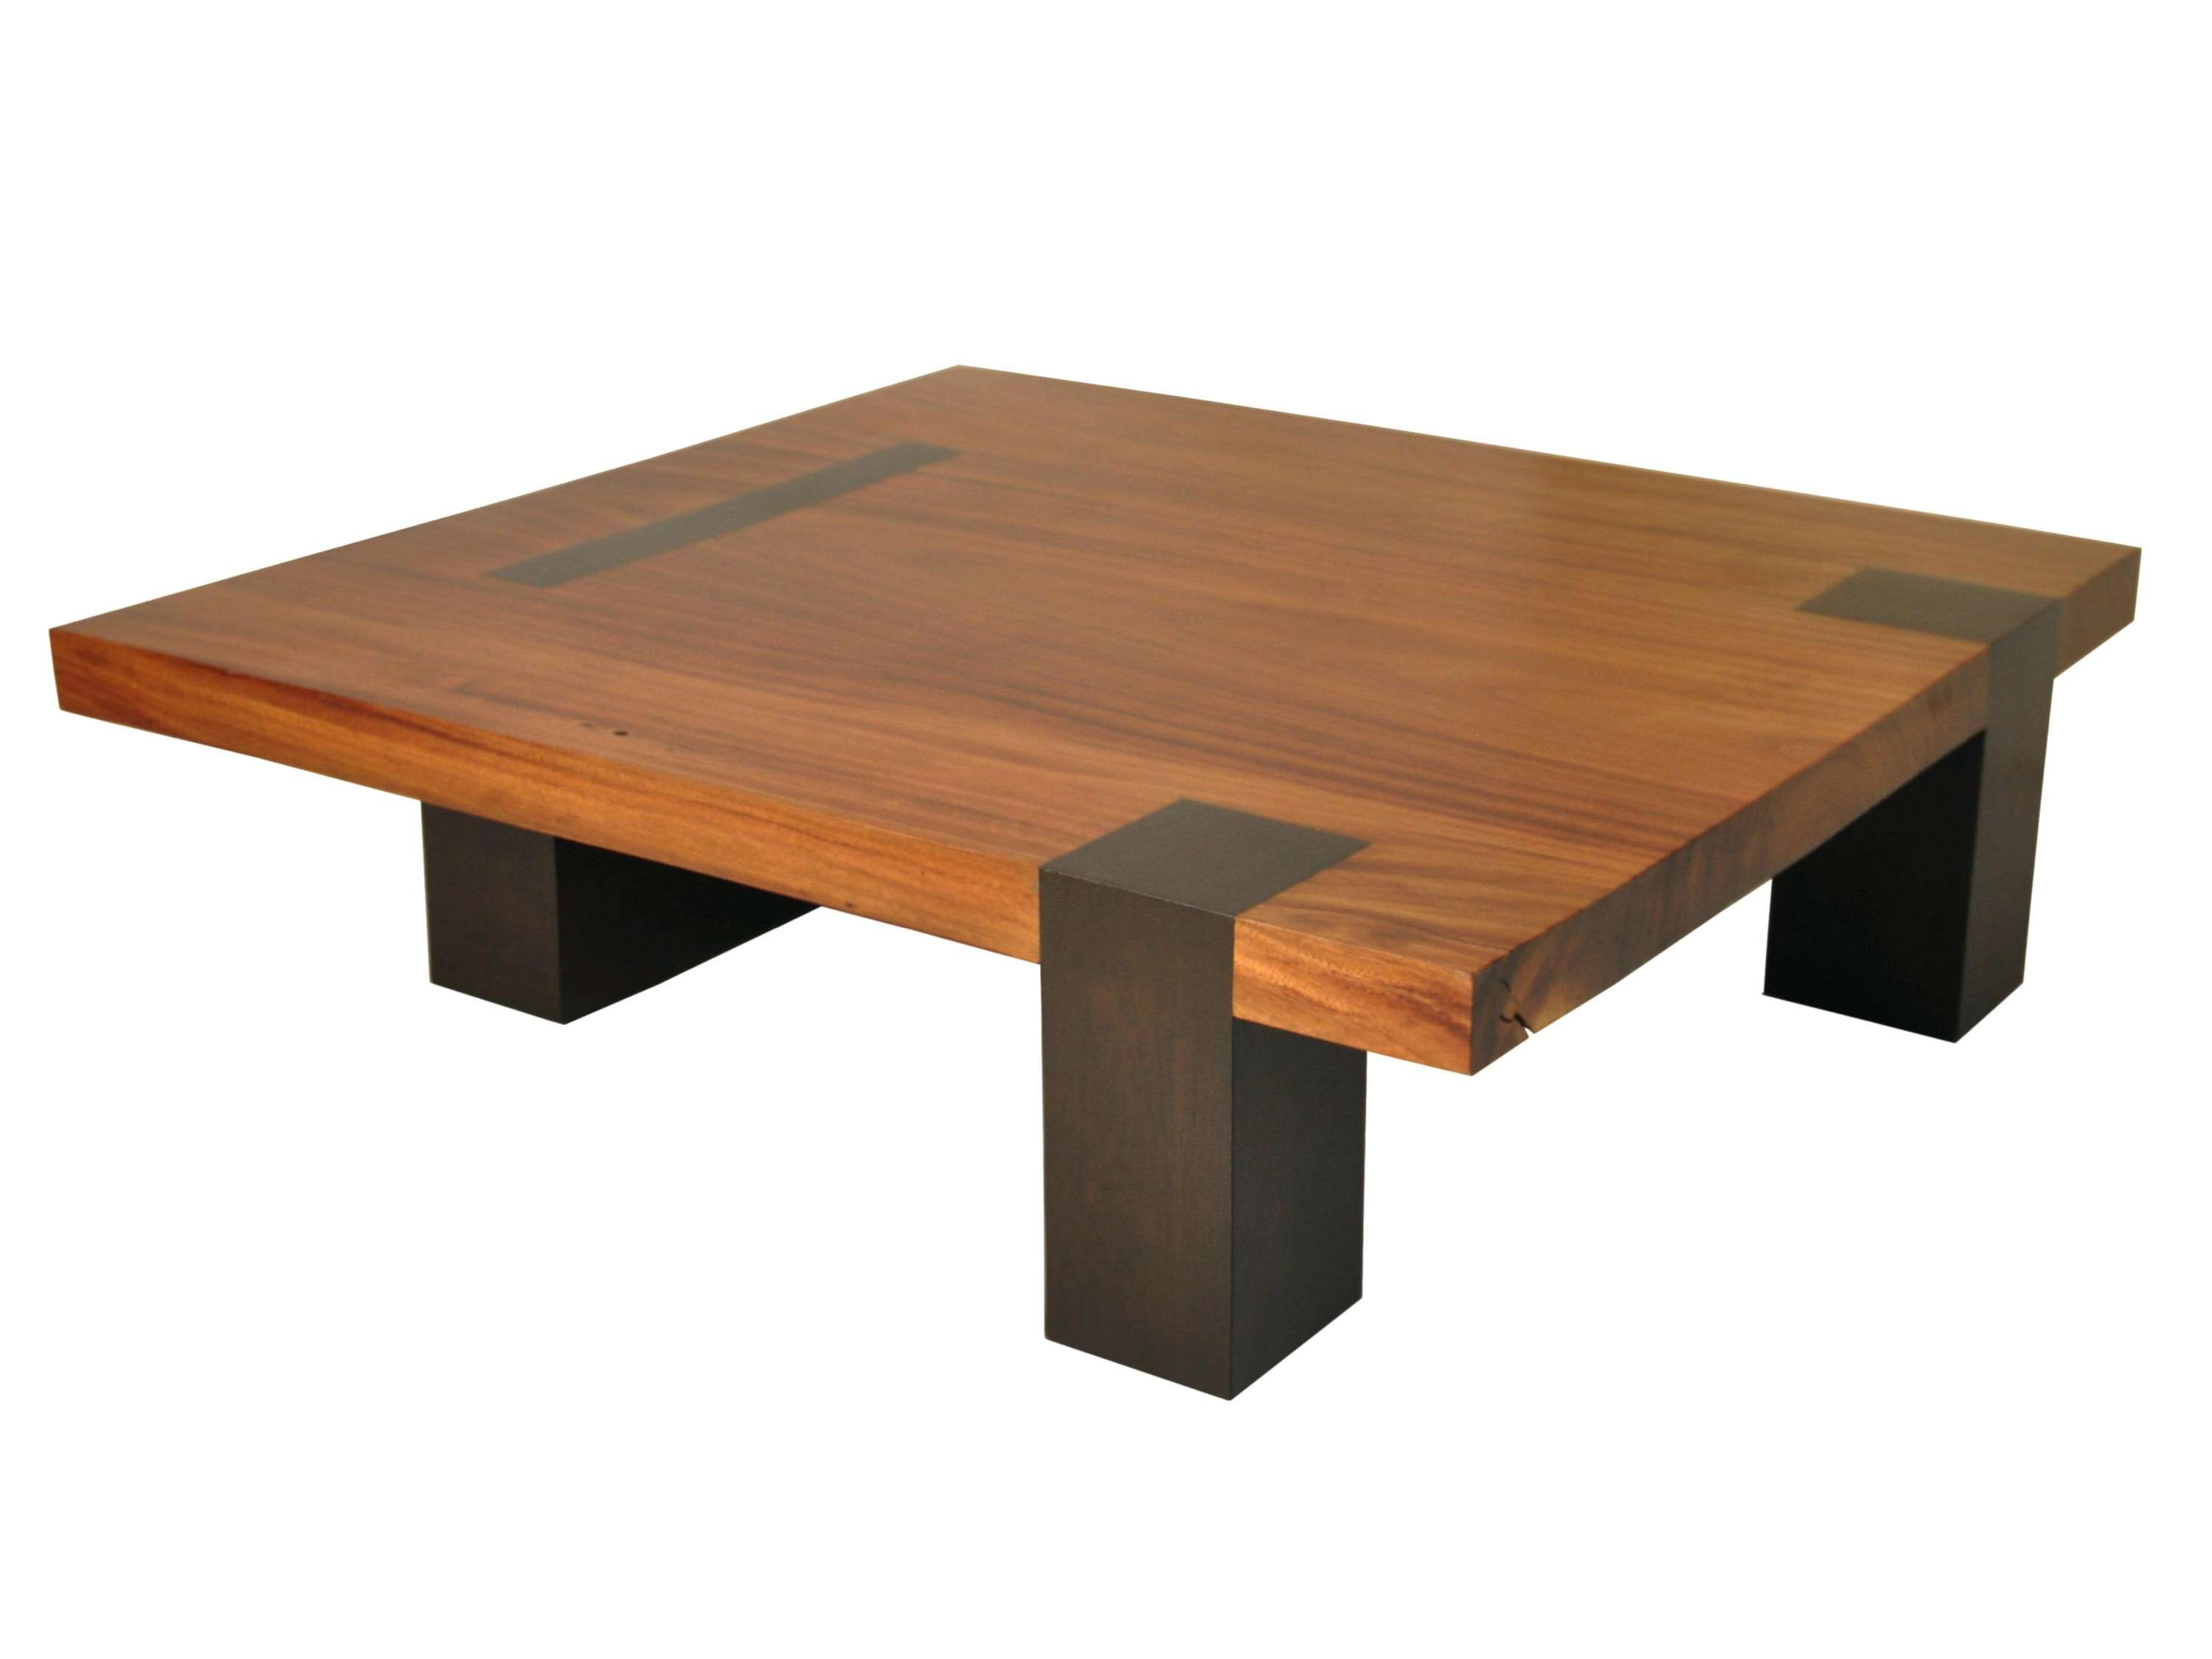 Most Popular Big Low Coffee Tables Regarding Coffee Table : Amazing Rustic Wood Coffee Table Big Coffee Tables (View 12 of 20)